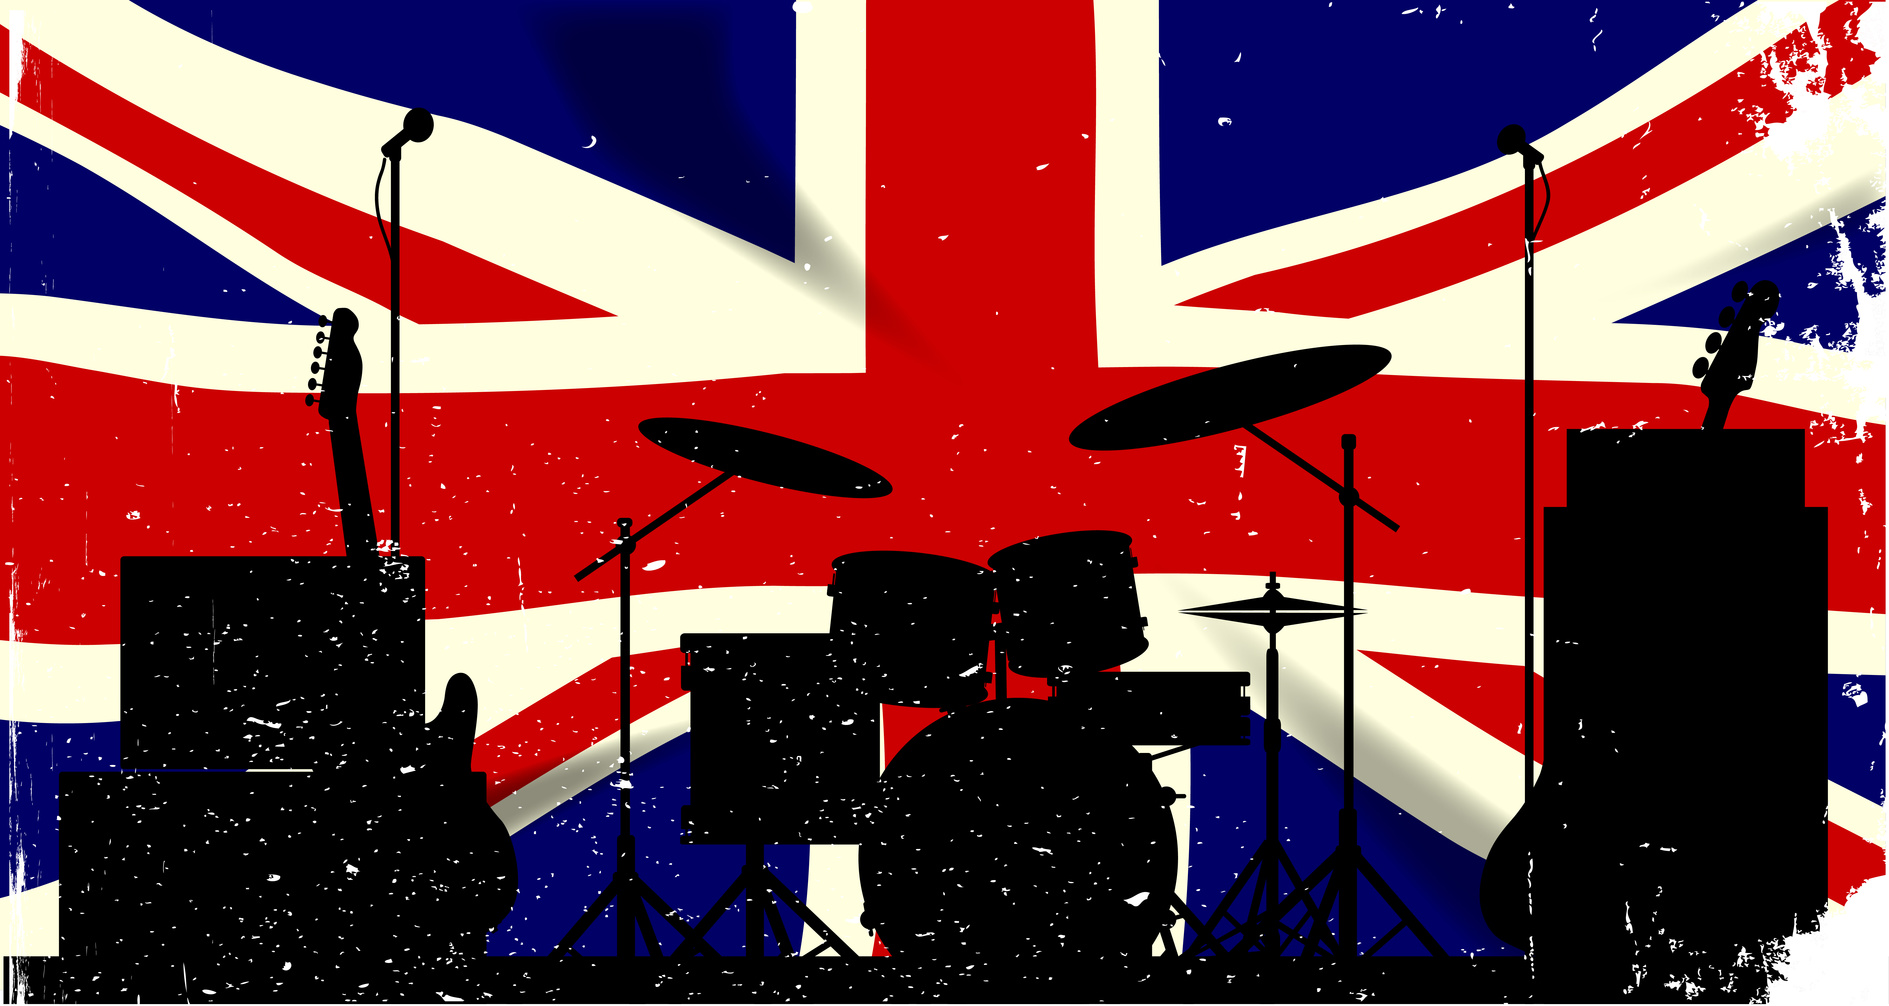 UK Rock Band